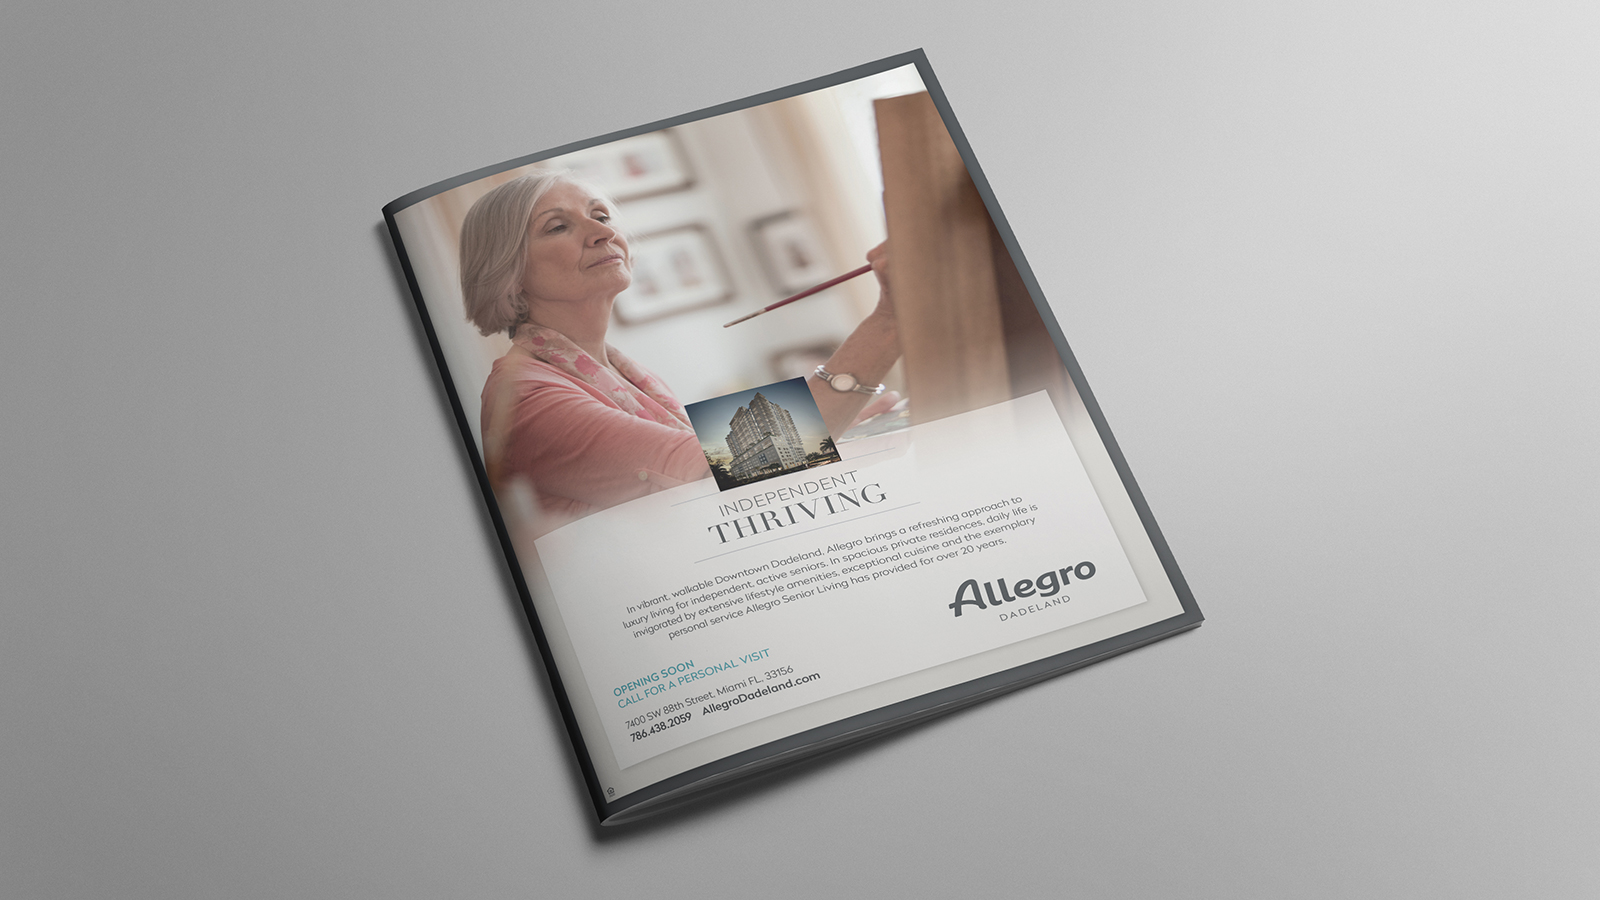 Allegro Dadeland marketing by LGD